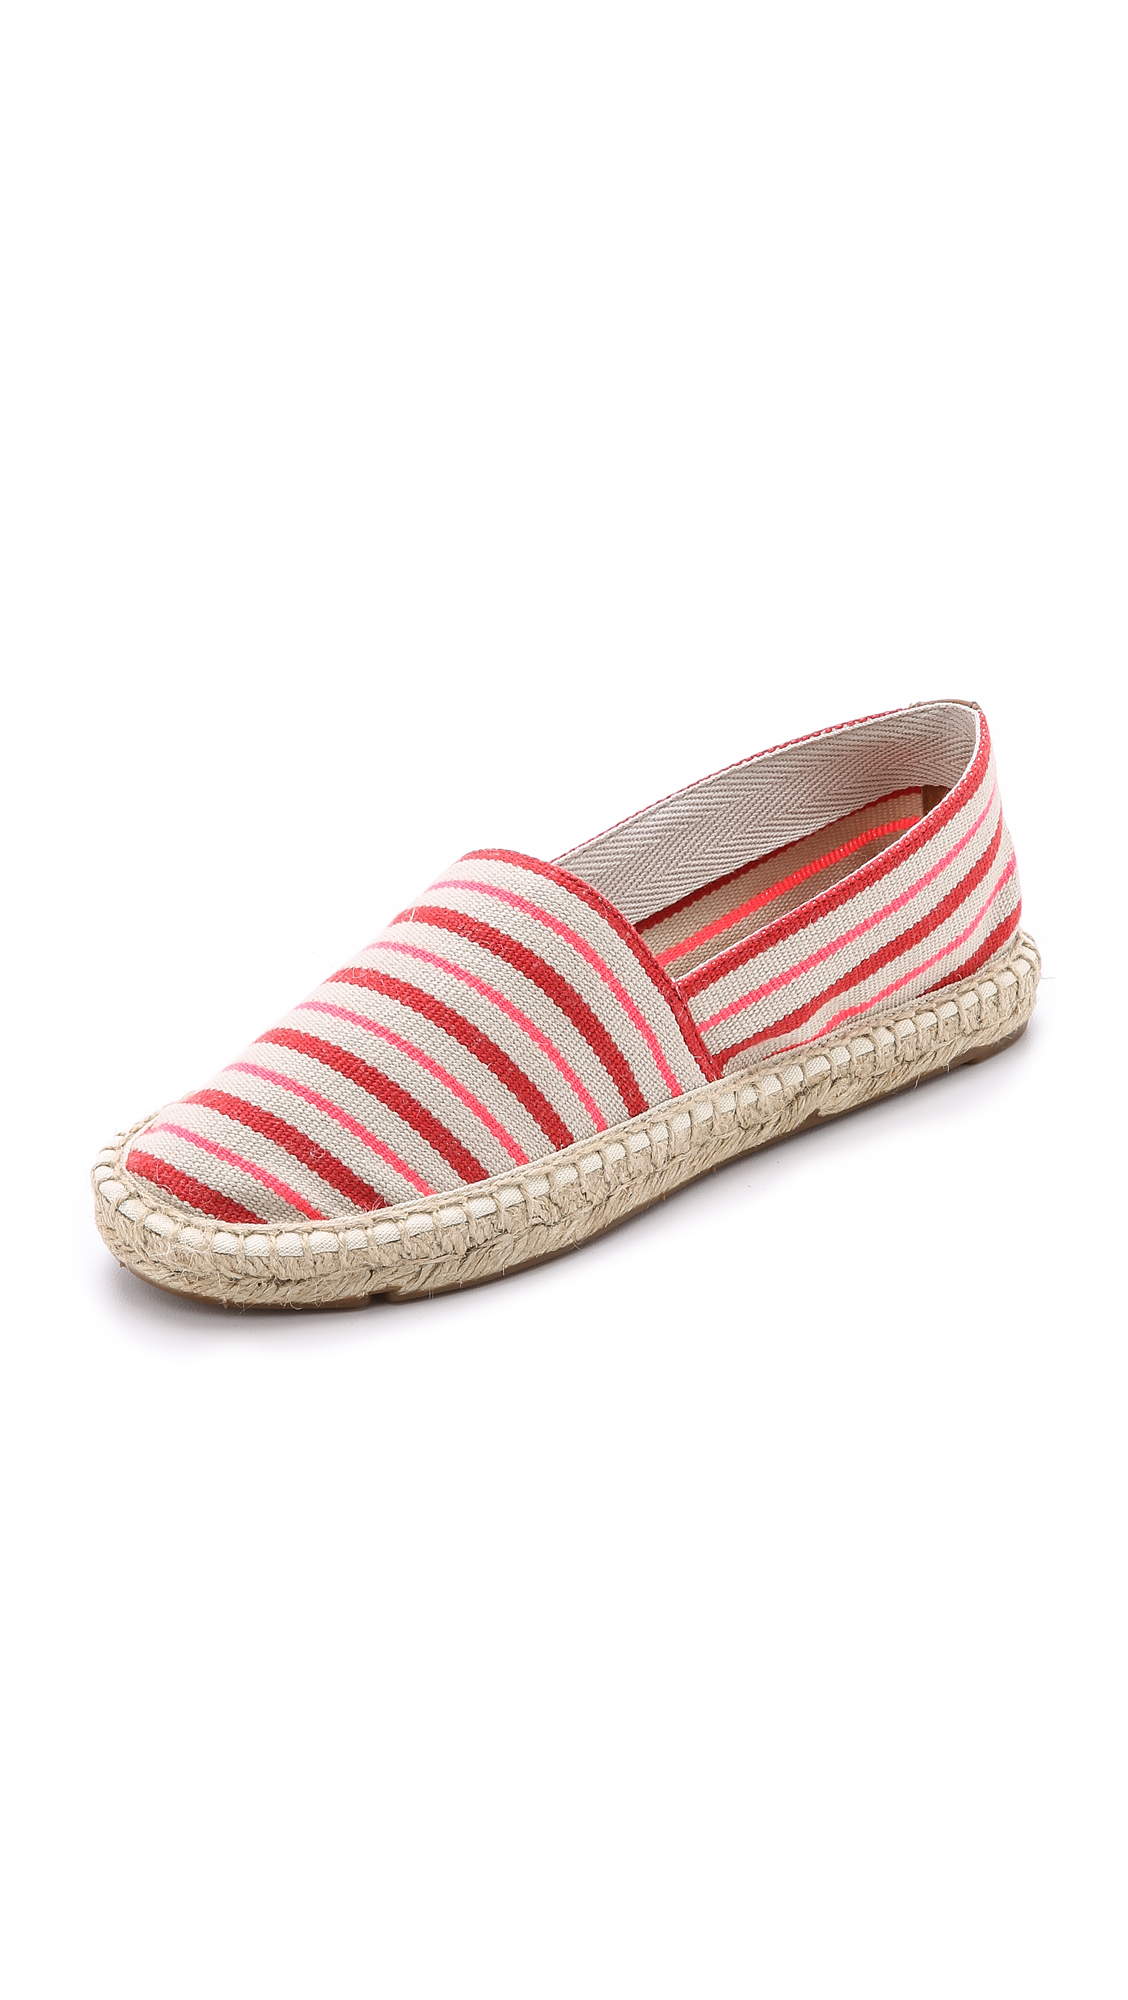 Tory Burch Slip On Espadrilles In Linen/Fluo Yellow/Tory Navy;Linen/Fluo Pink/Masai Red